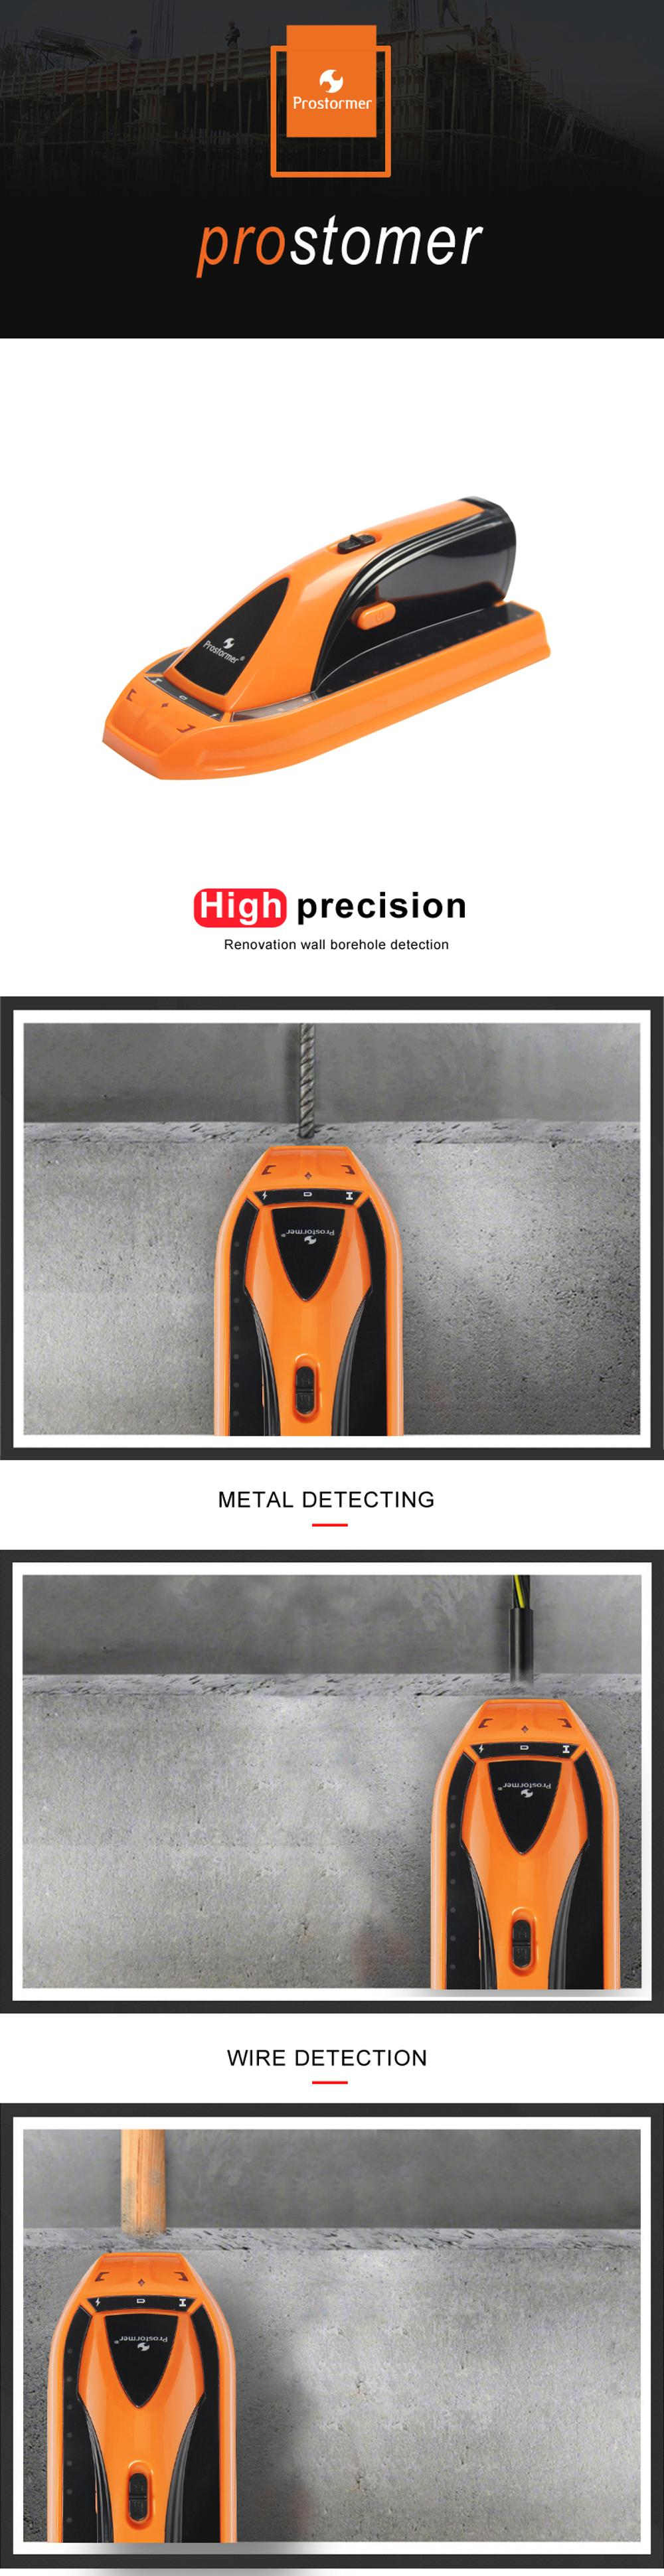 PROSTORMER Metal Detector for wires,metal and wood